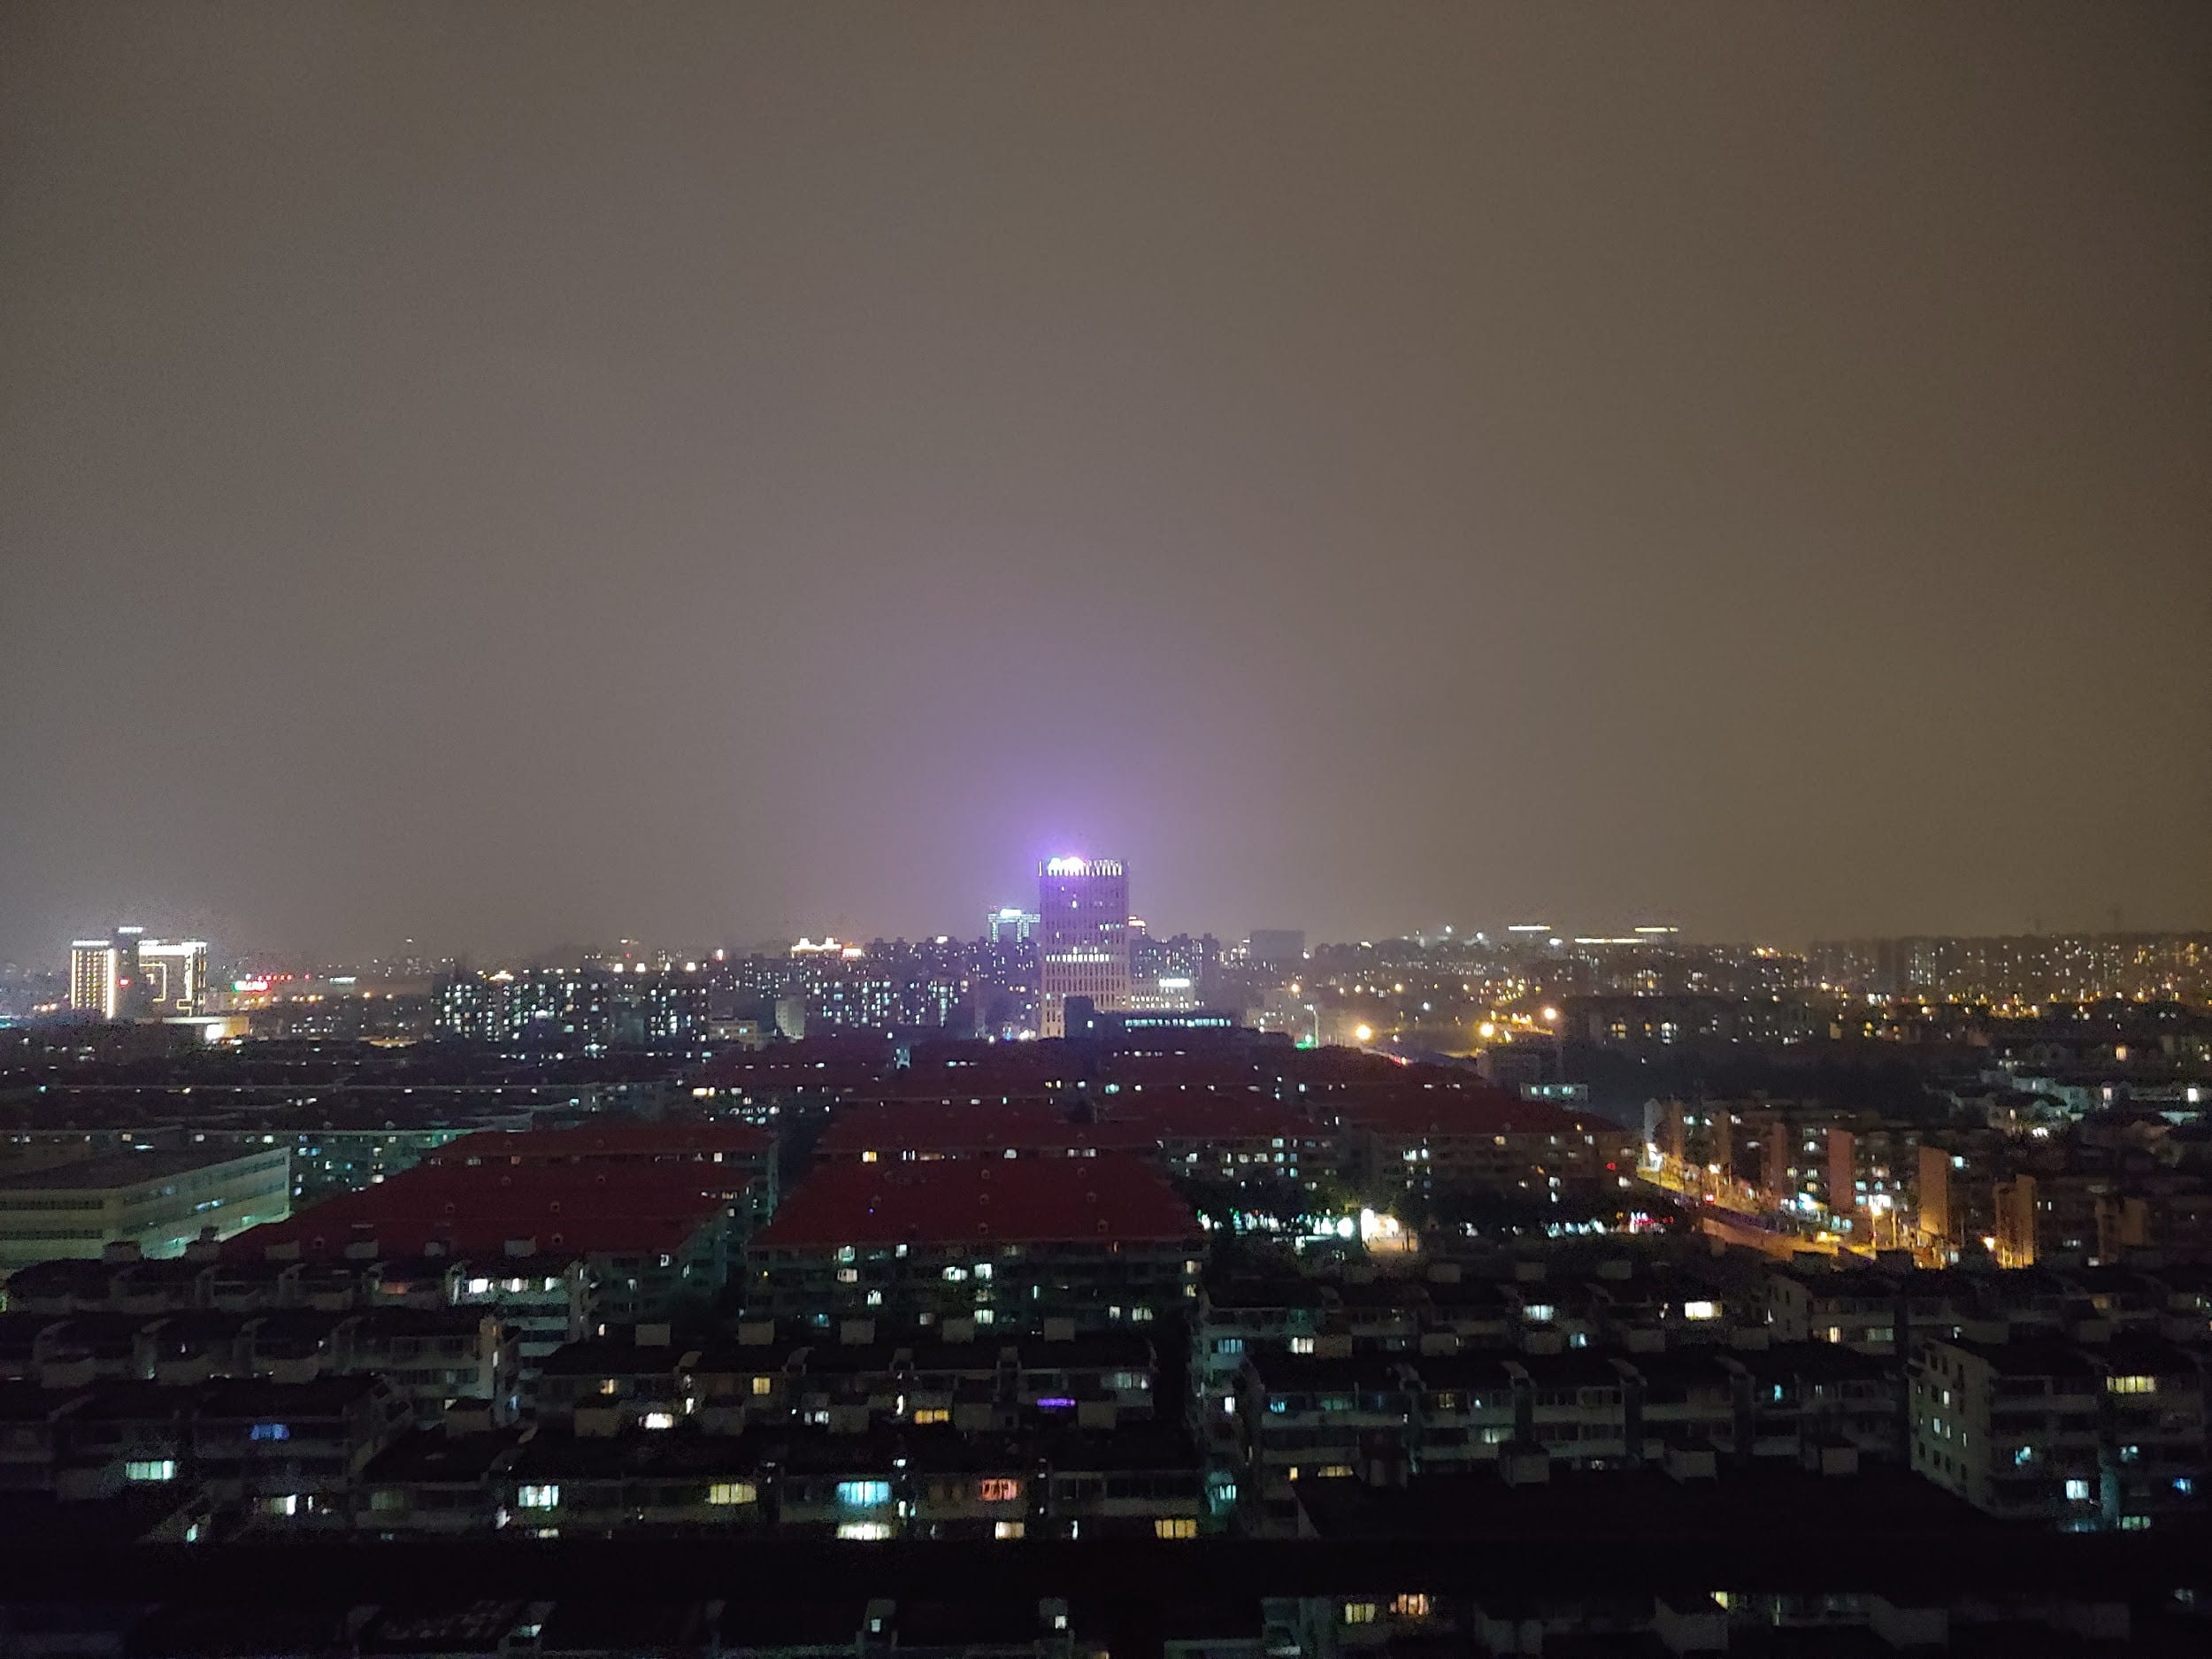 view of Shanghai from top at night